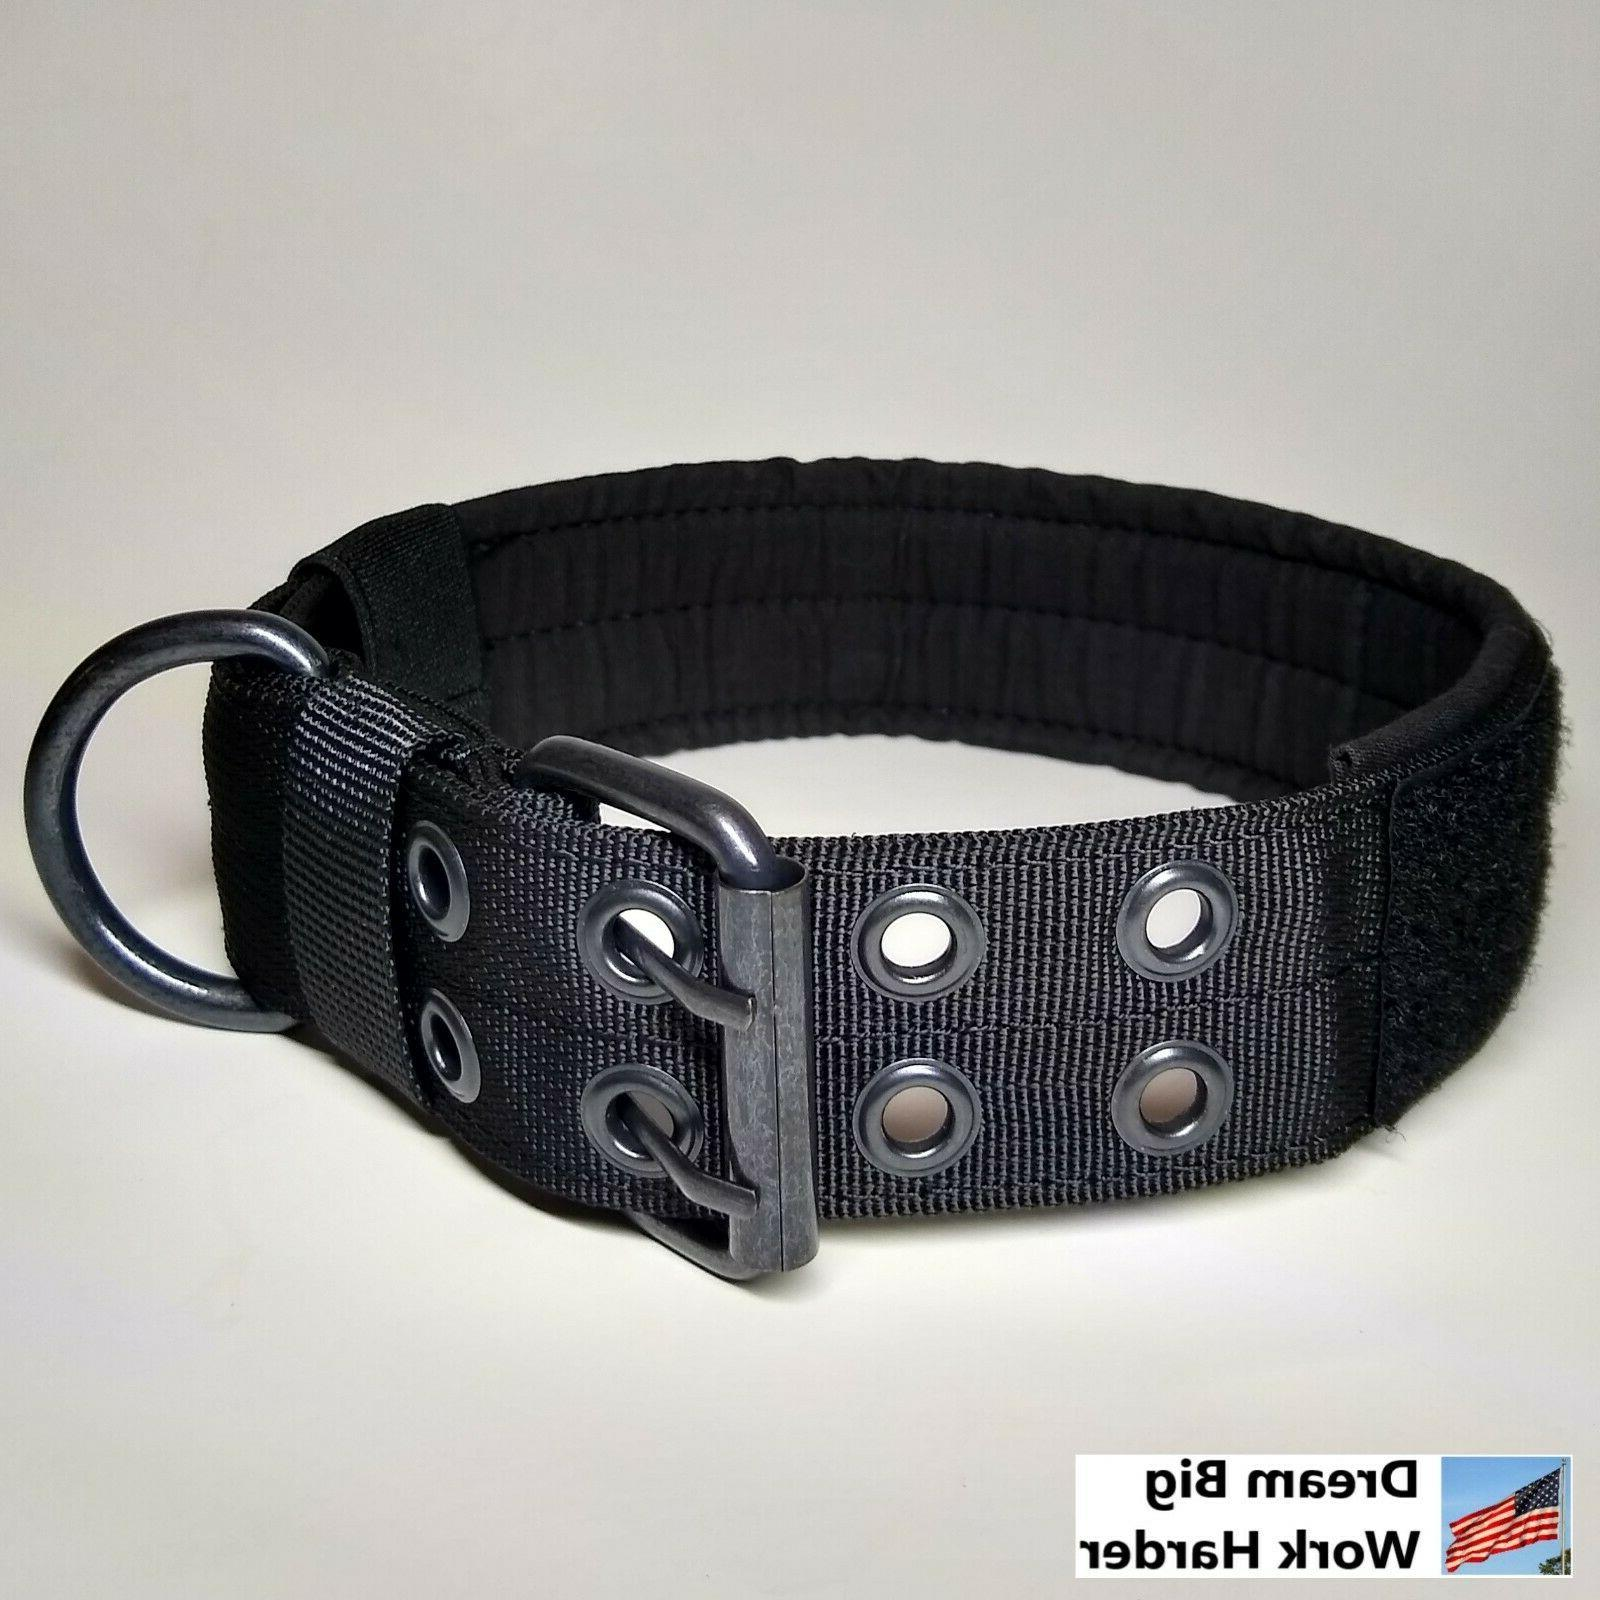 Large Heavy Duty Nylon Dog Tactical Military with Metal Buckle